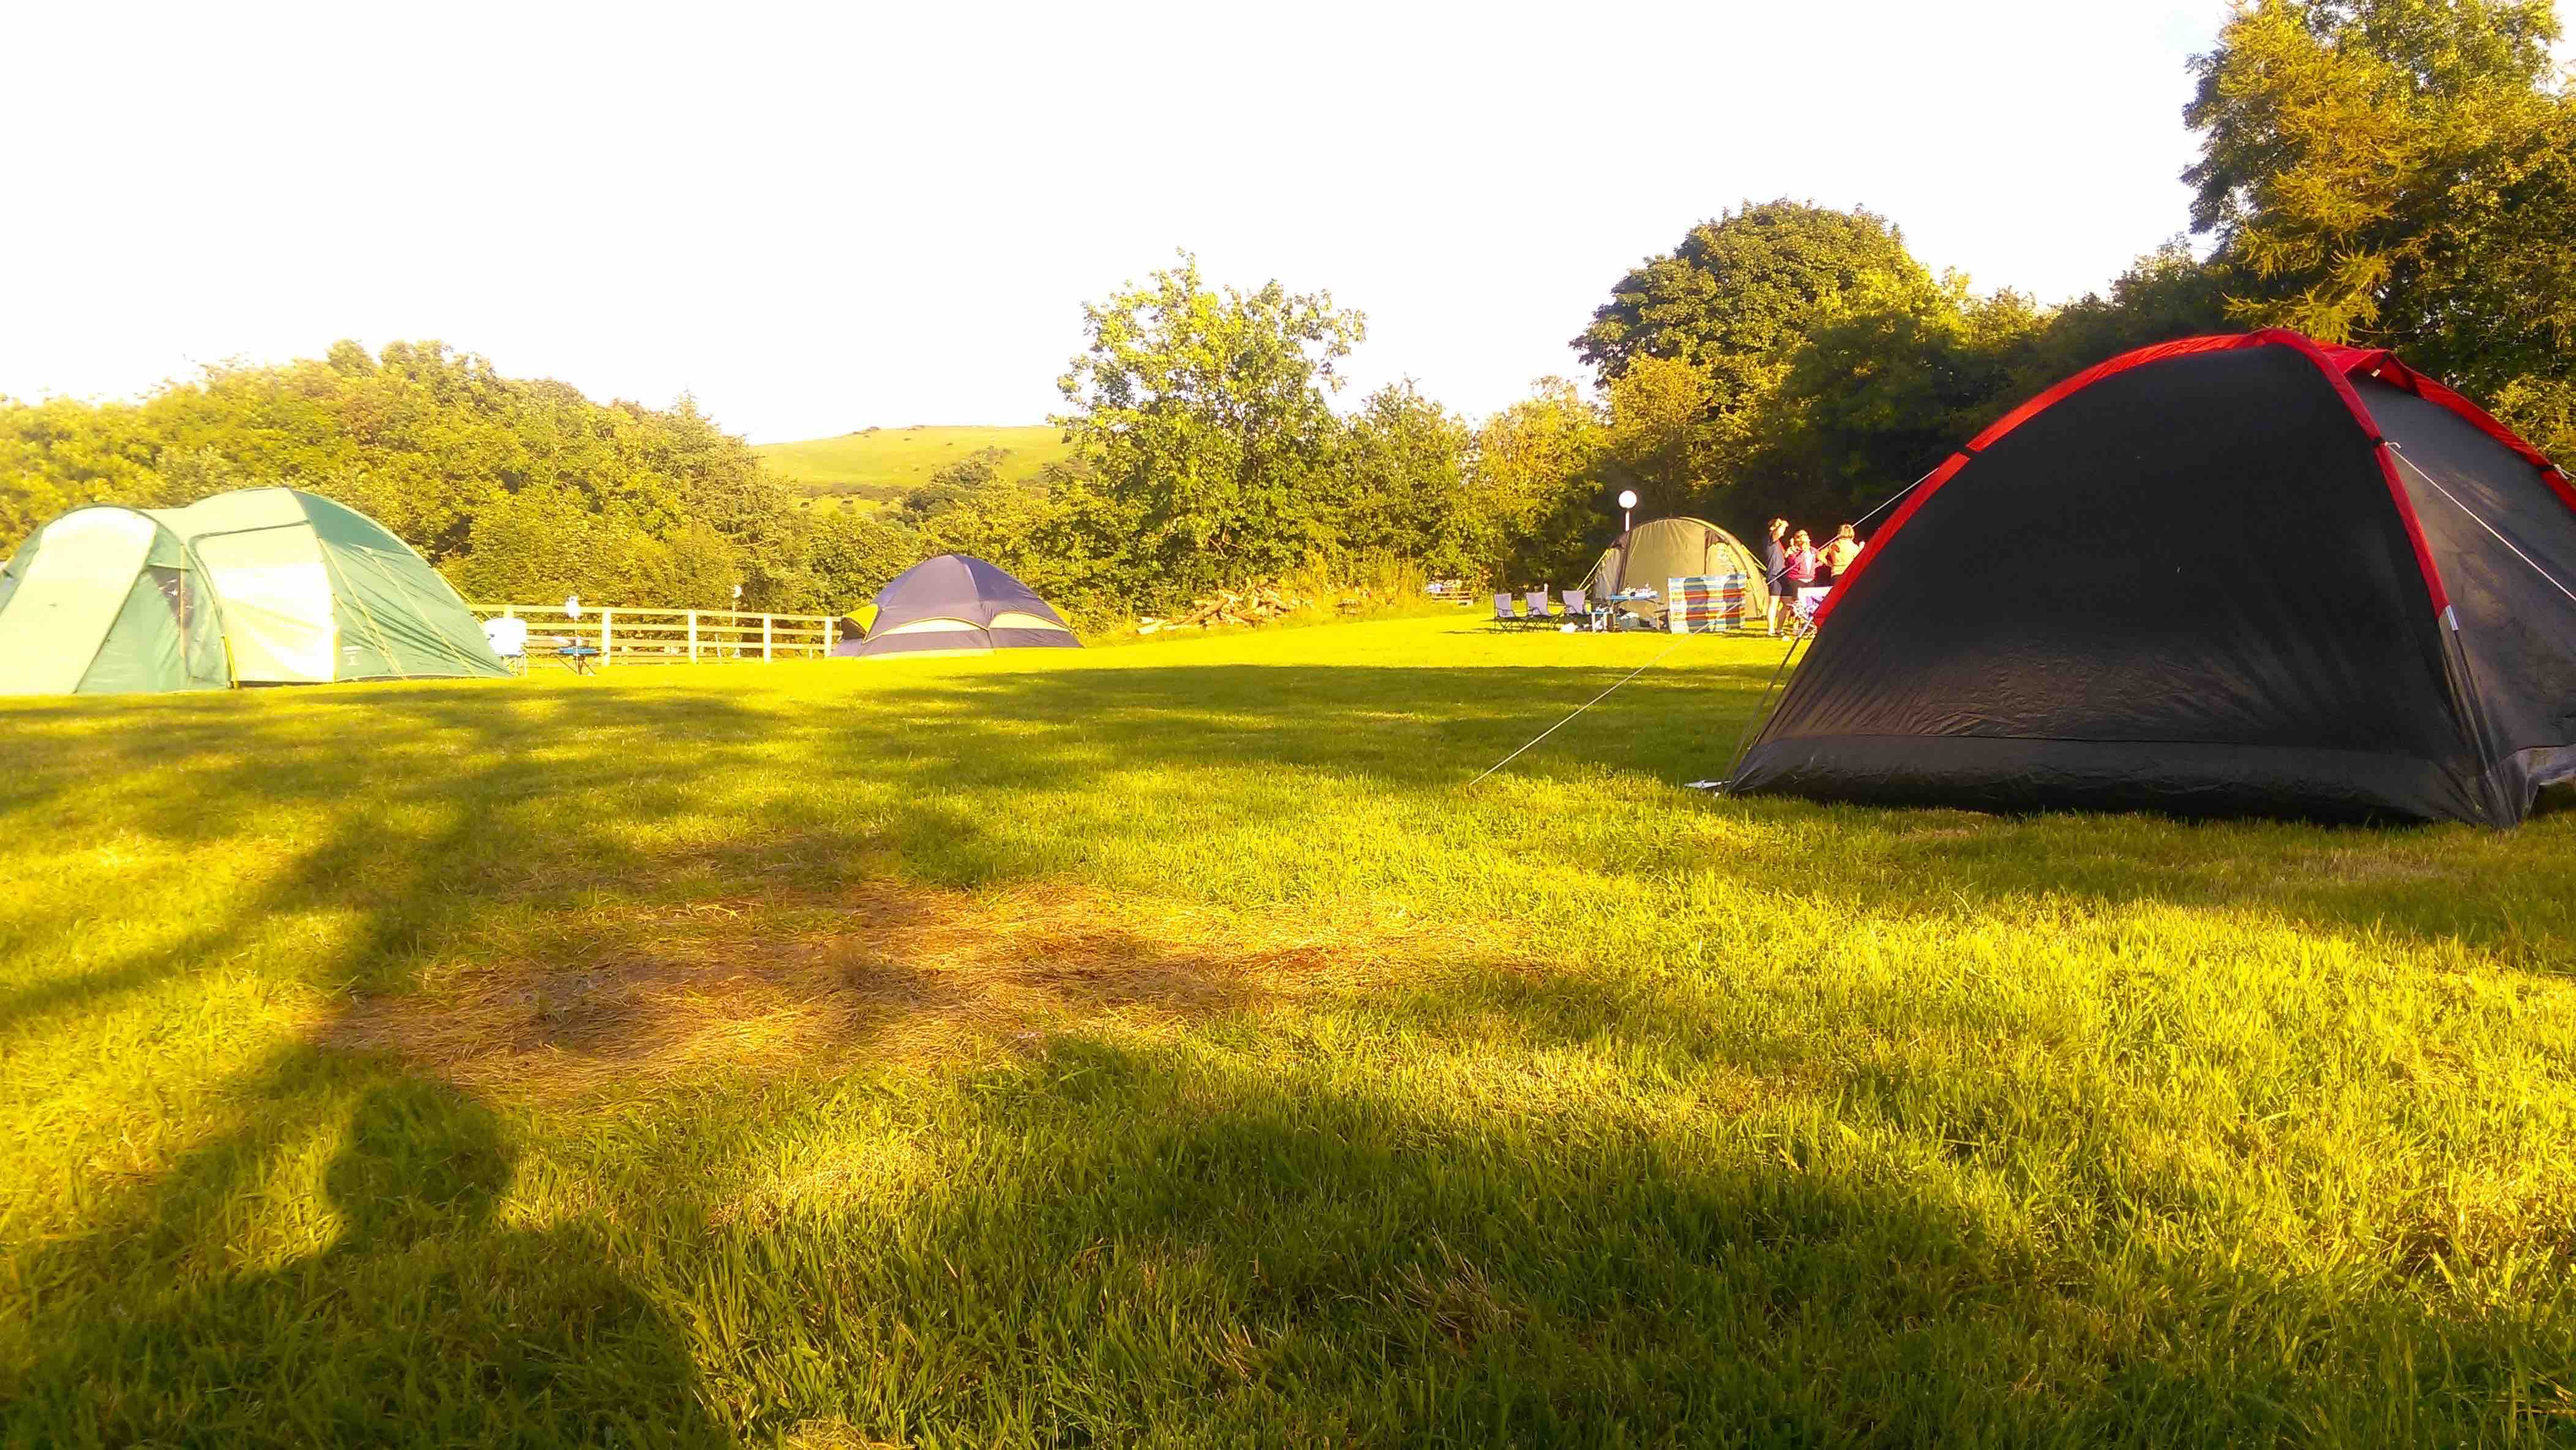 The Best Campsites in Ireland All Recommended by Parents